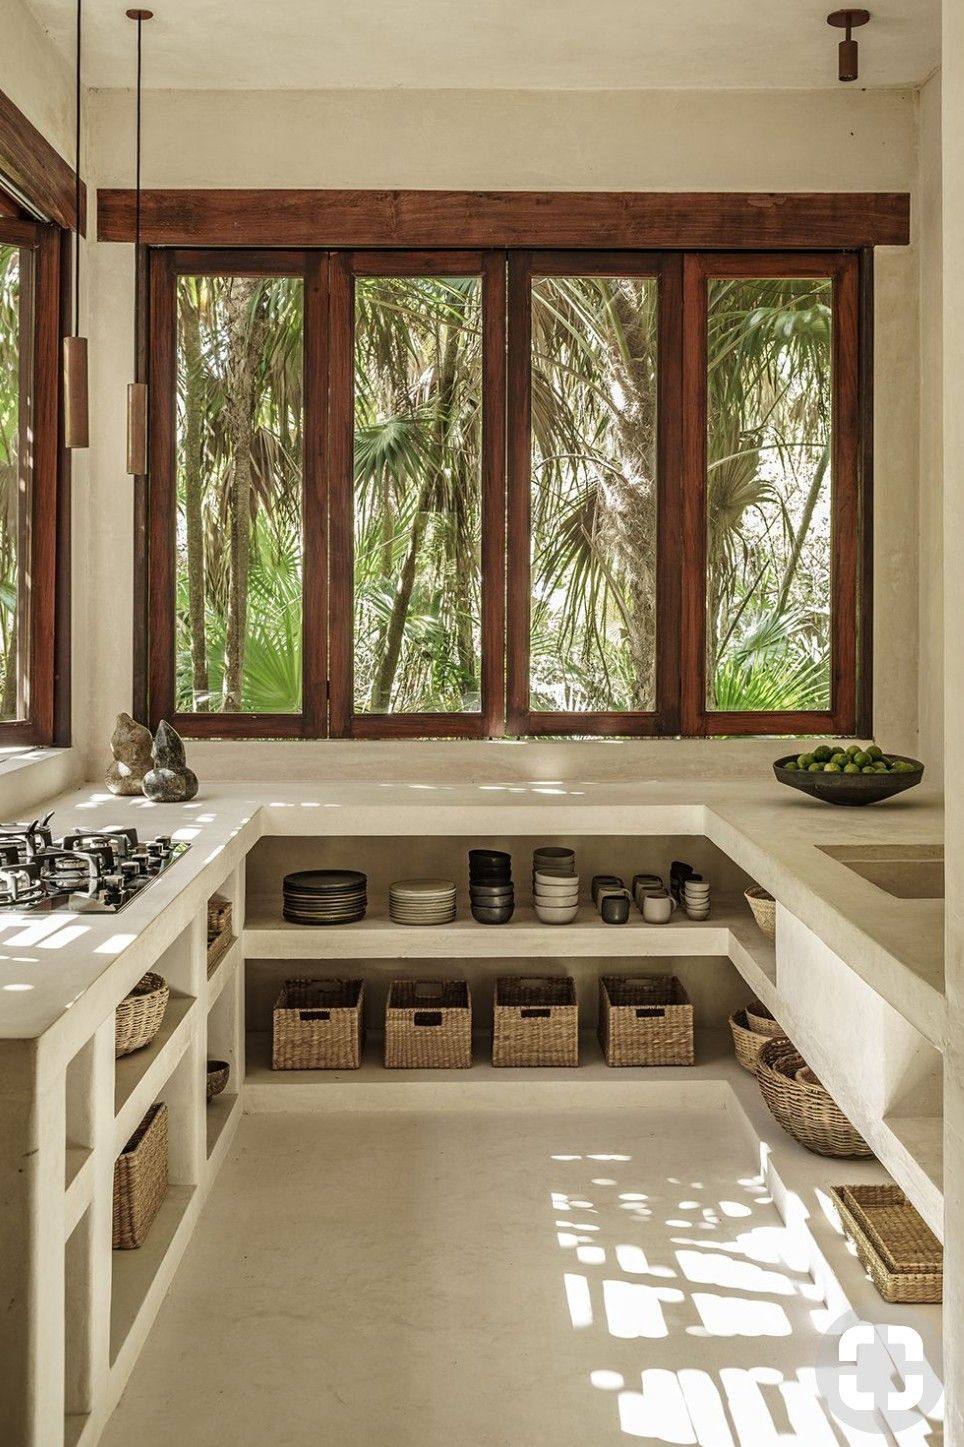 Pin by Brooke L. Gilley on Green Home | Pinterest | Arredamento ...